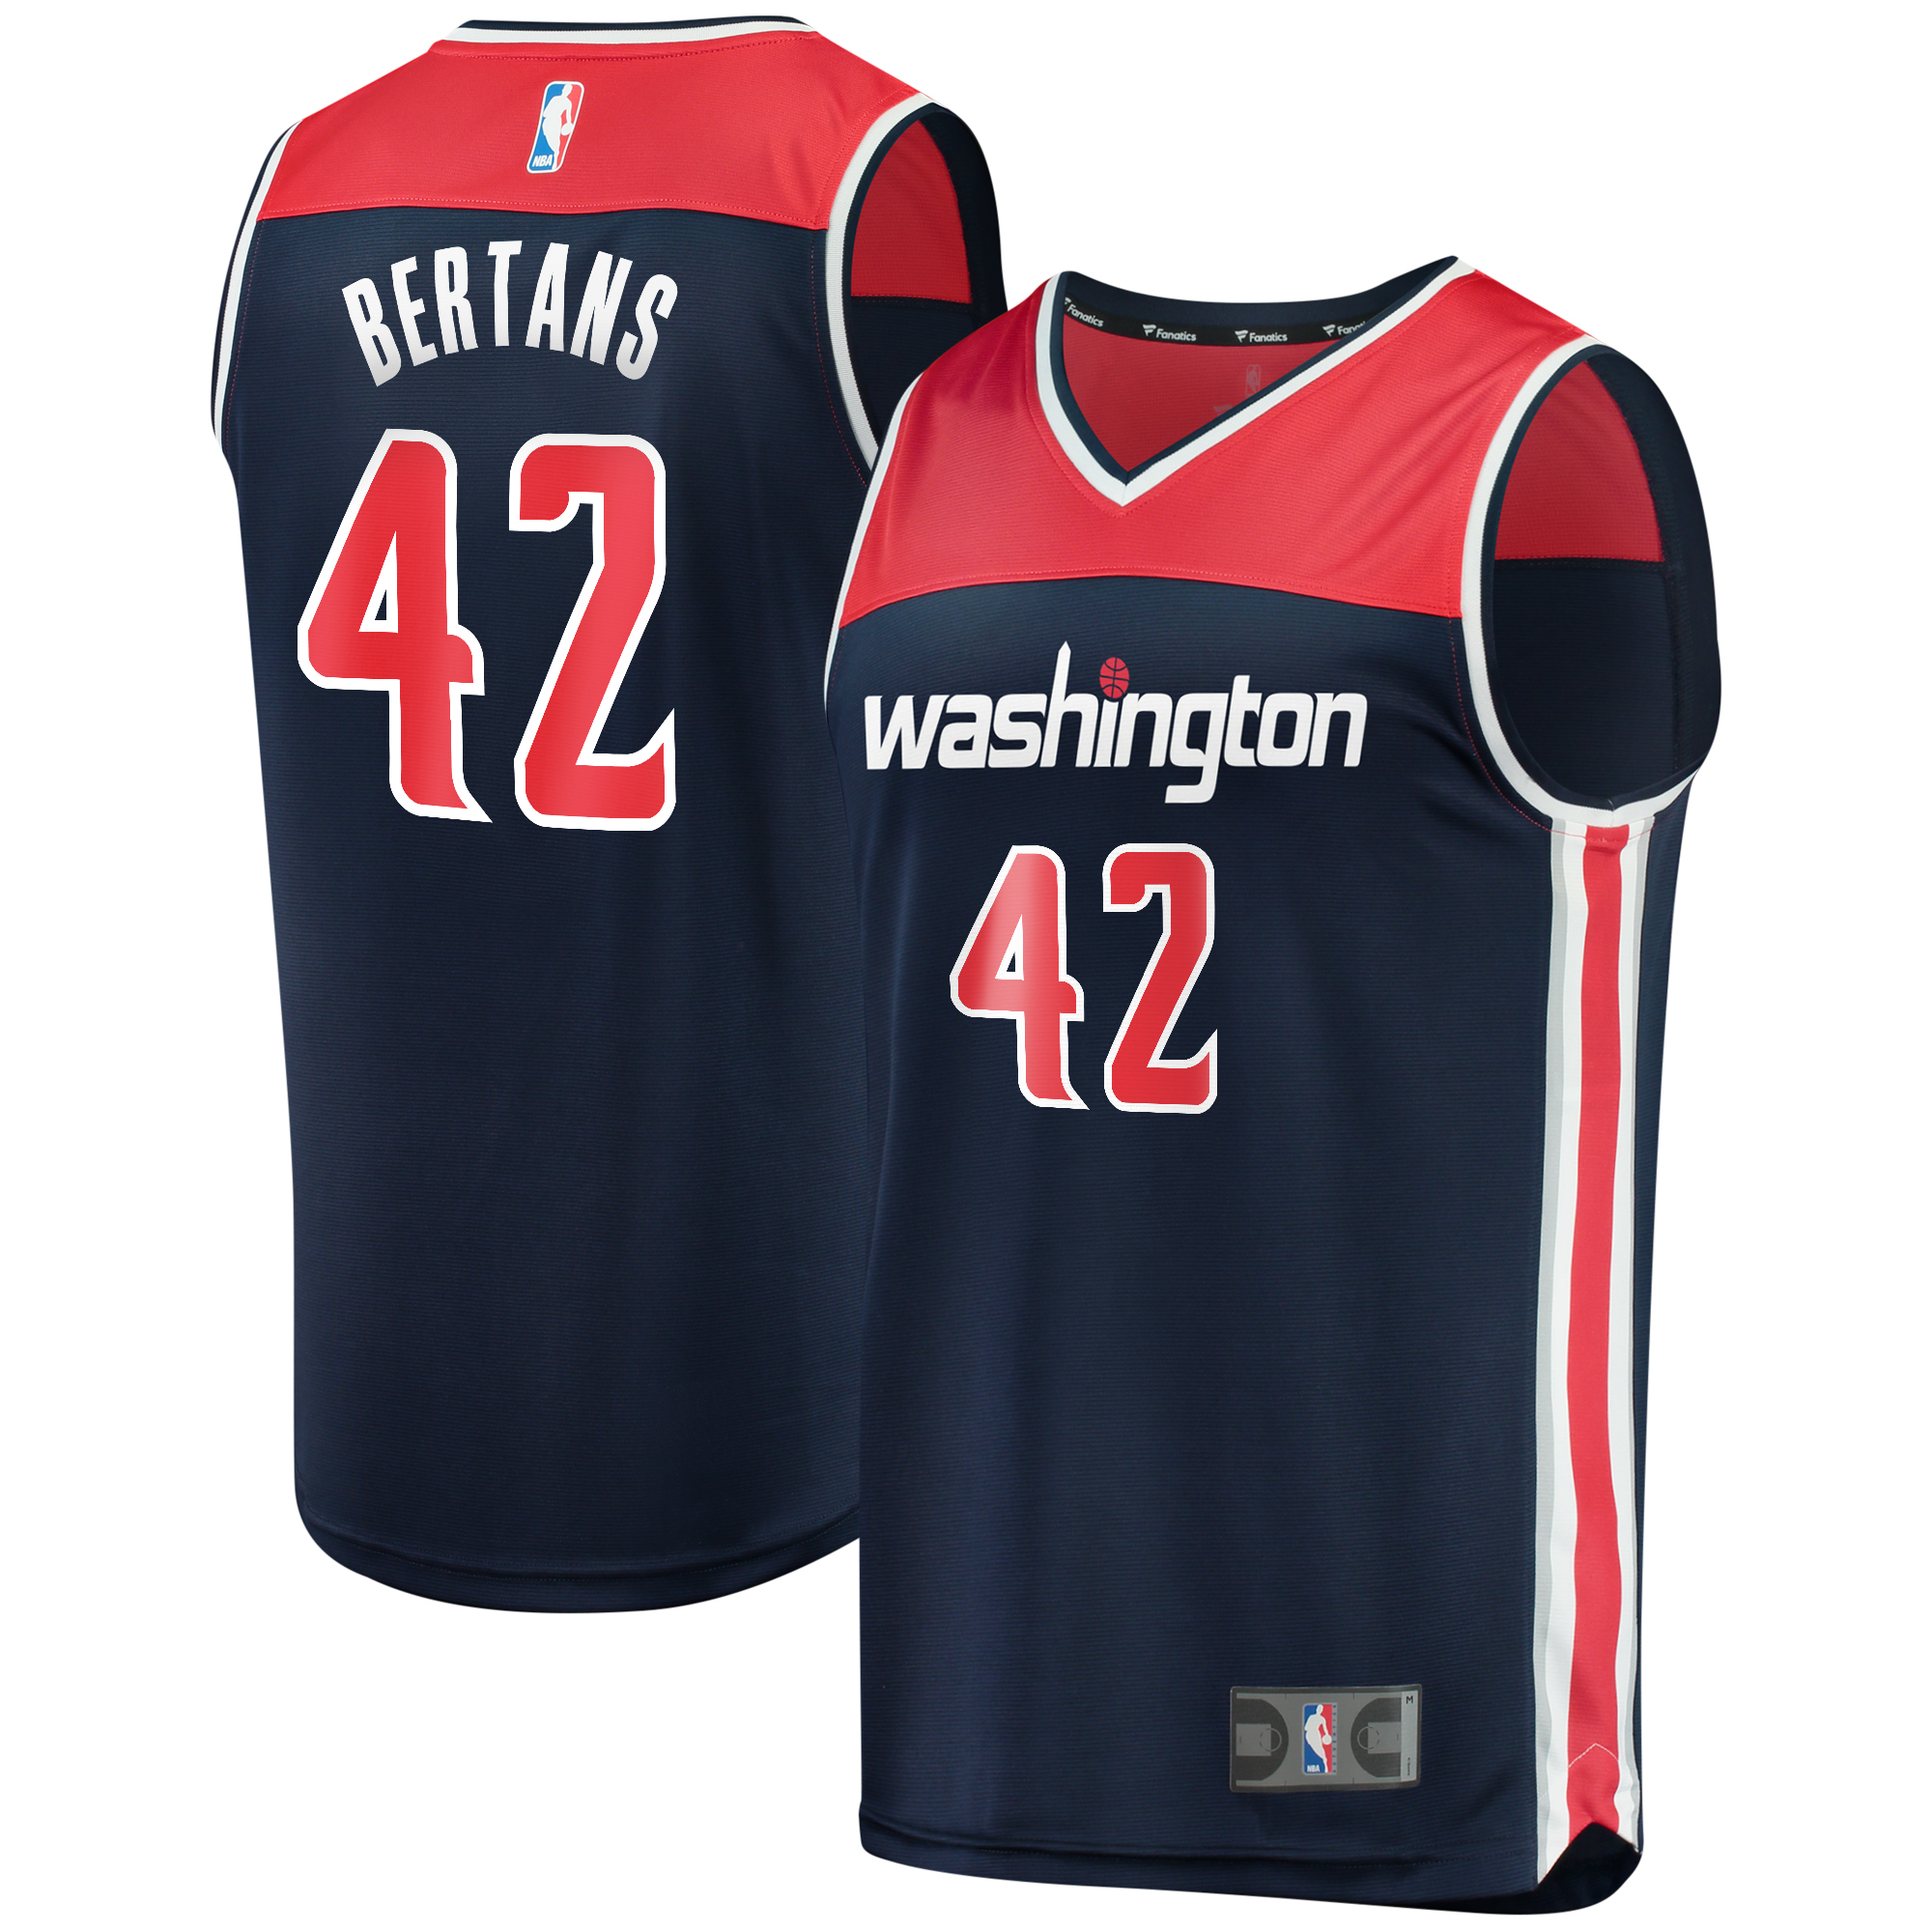 Davis Bertans Washington Wizards Fanatics Branded Fast Break Replica Player Jersey Navy - Statement Edition